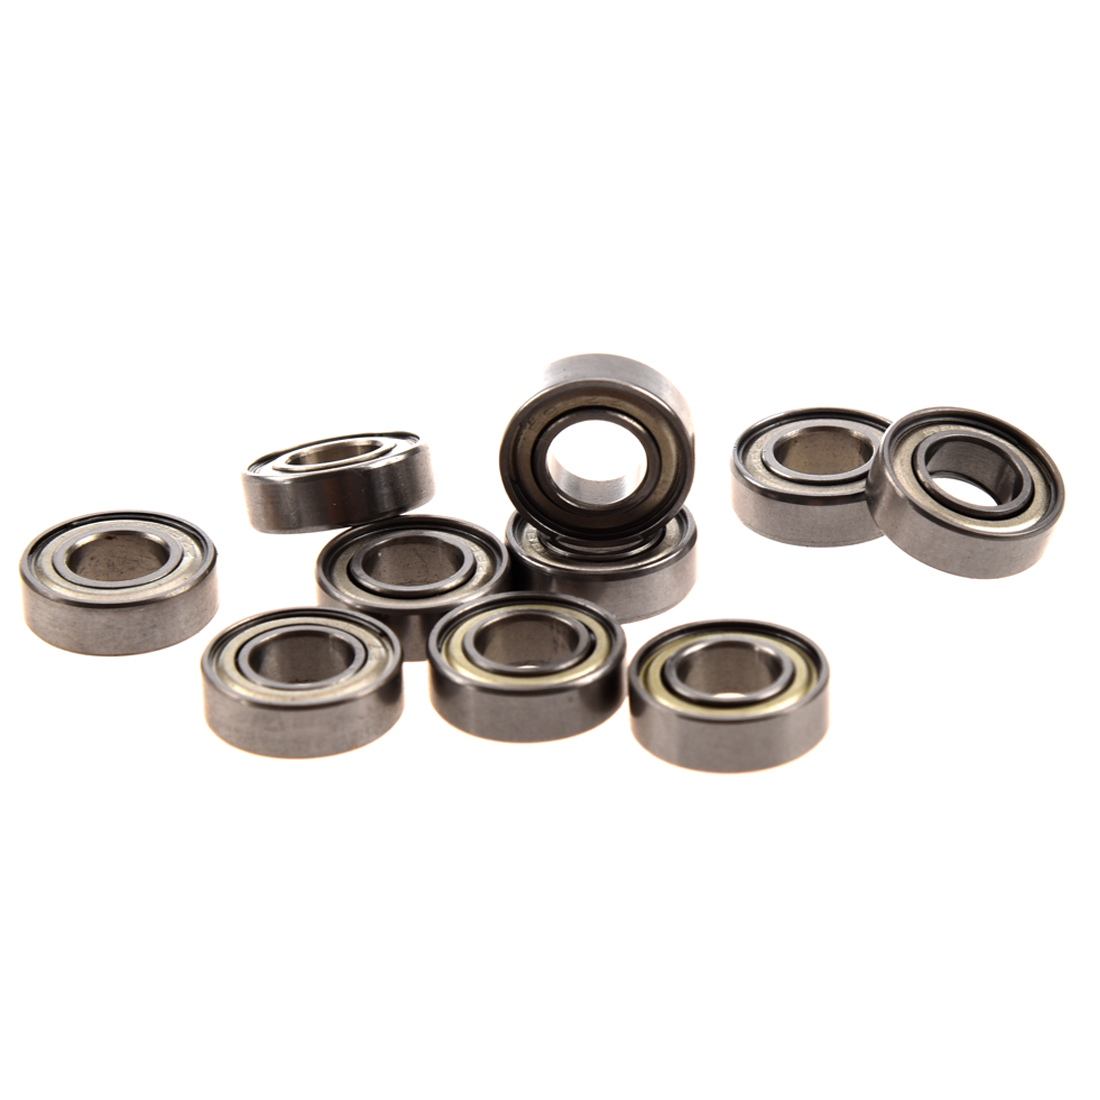 Wholesales 10 Pcs 698Z 8 x 19 x6mm Single Row Sealed Deep Groove Ball Bearings image